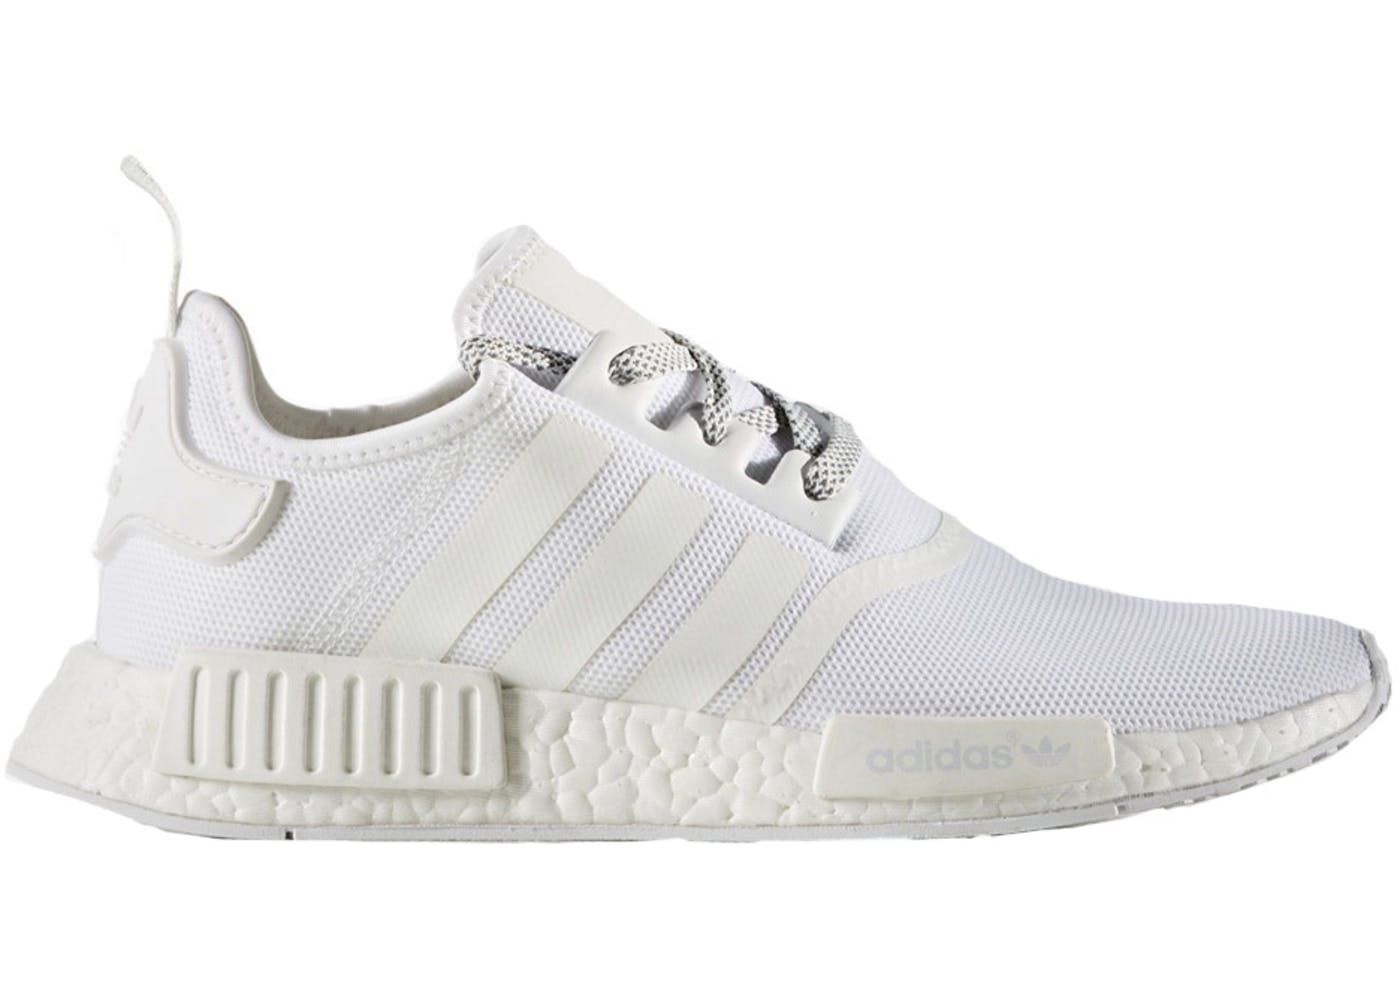 adidas nmd r1 triple white primeknit. Black Bedroom Furniture Sets. Home Design Ideas